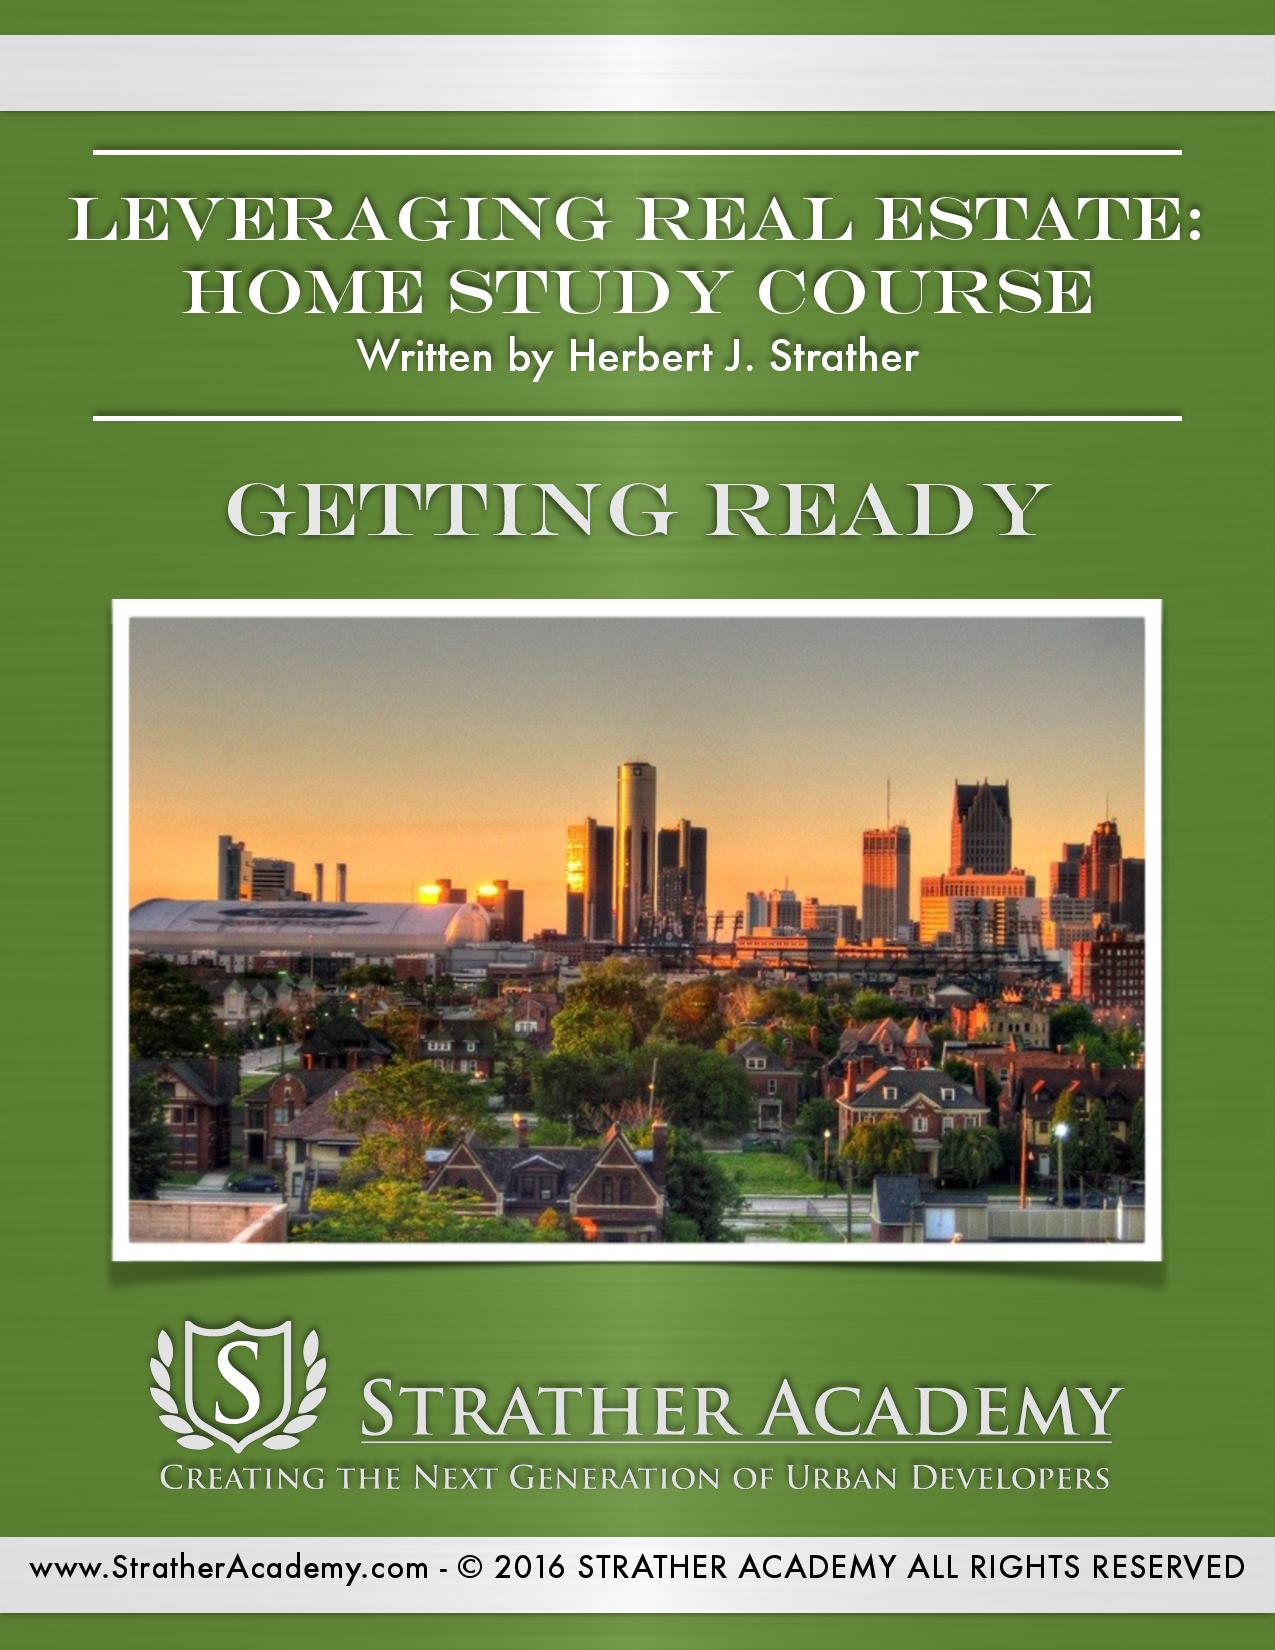 HSC+-+GETTING+READY-page-001.jpg